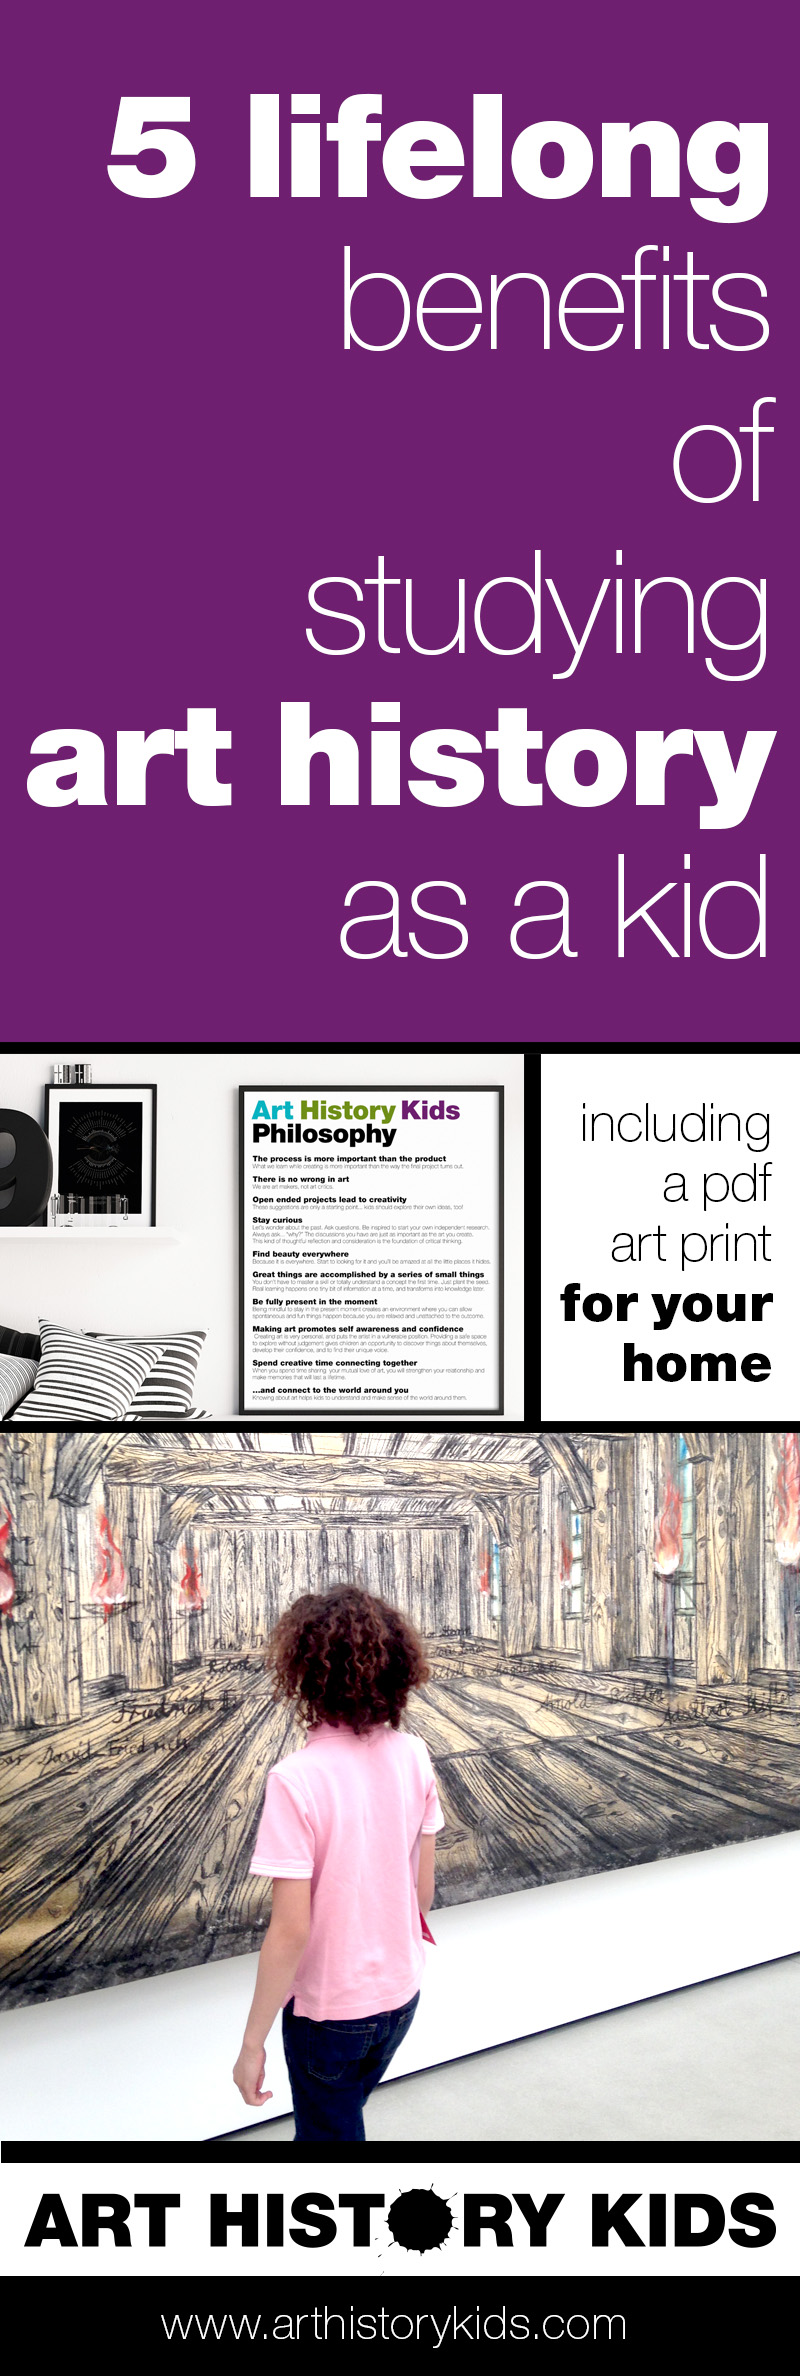 Kids who are introduced to art history at a young age (the younger the better) enjoy so many lifelong benefits. Print the Art History Kids philosophy and post it in your art area or kids' room as a reminder to enjoy art together every day... even if only for 5 minutes.